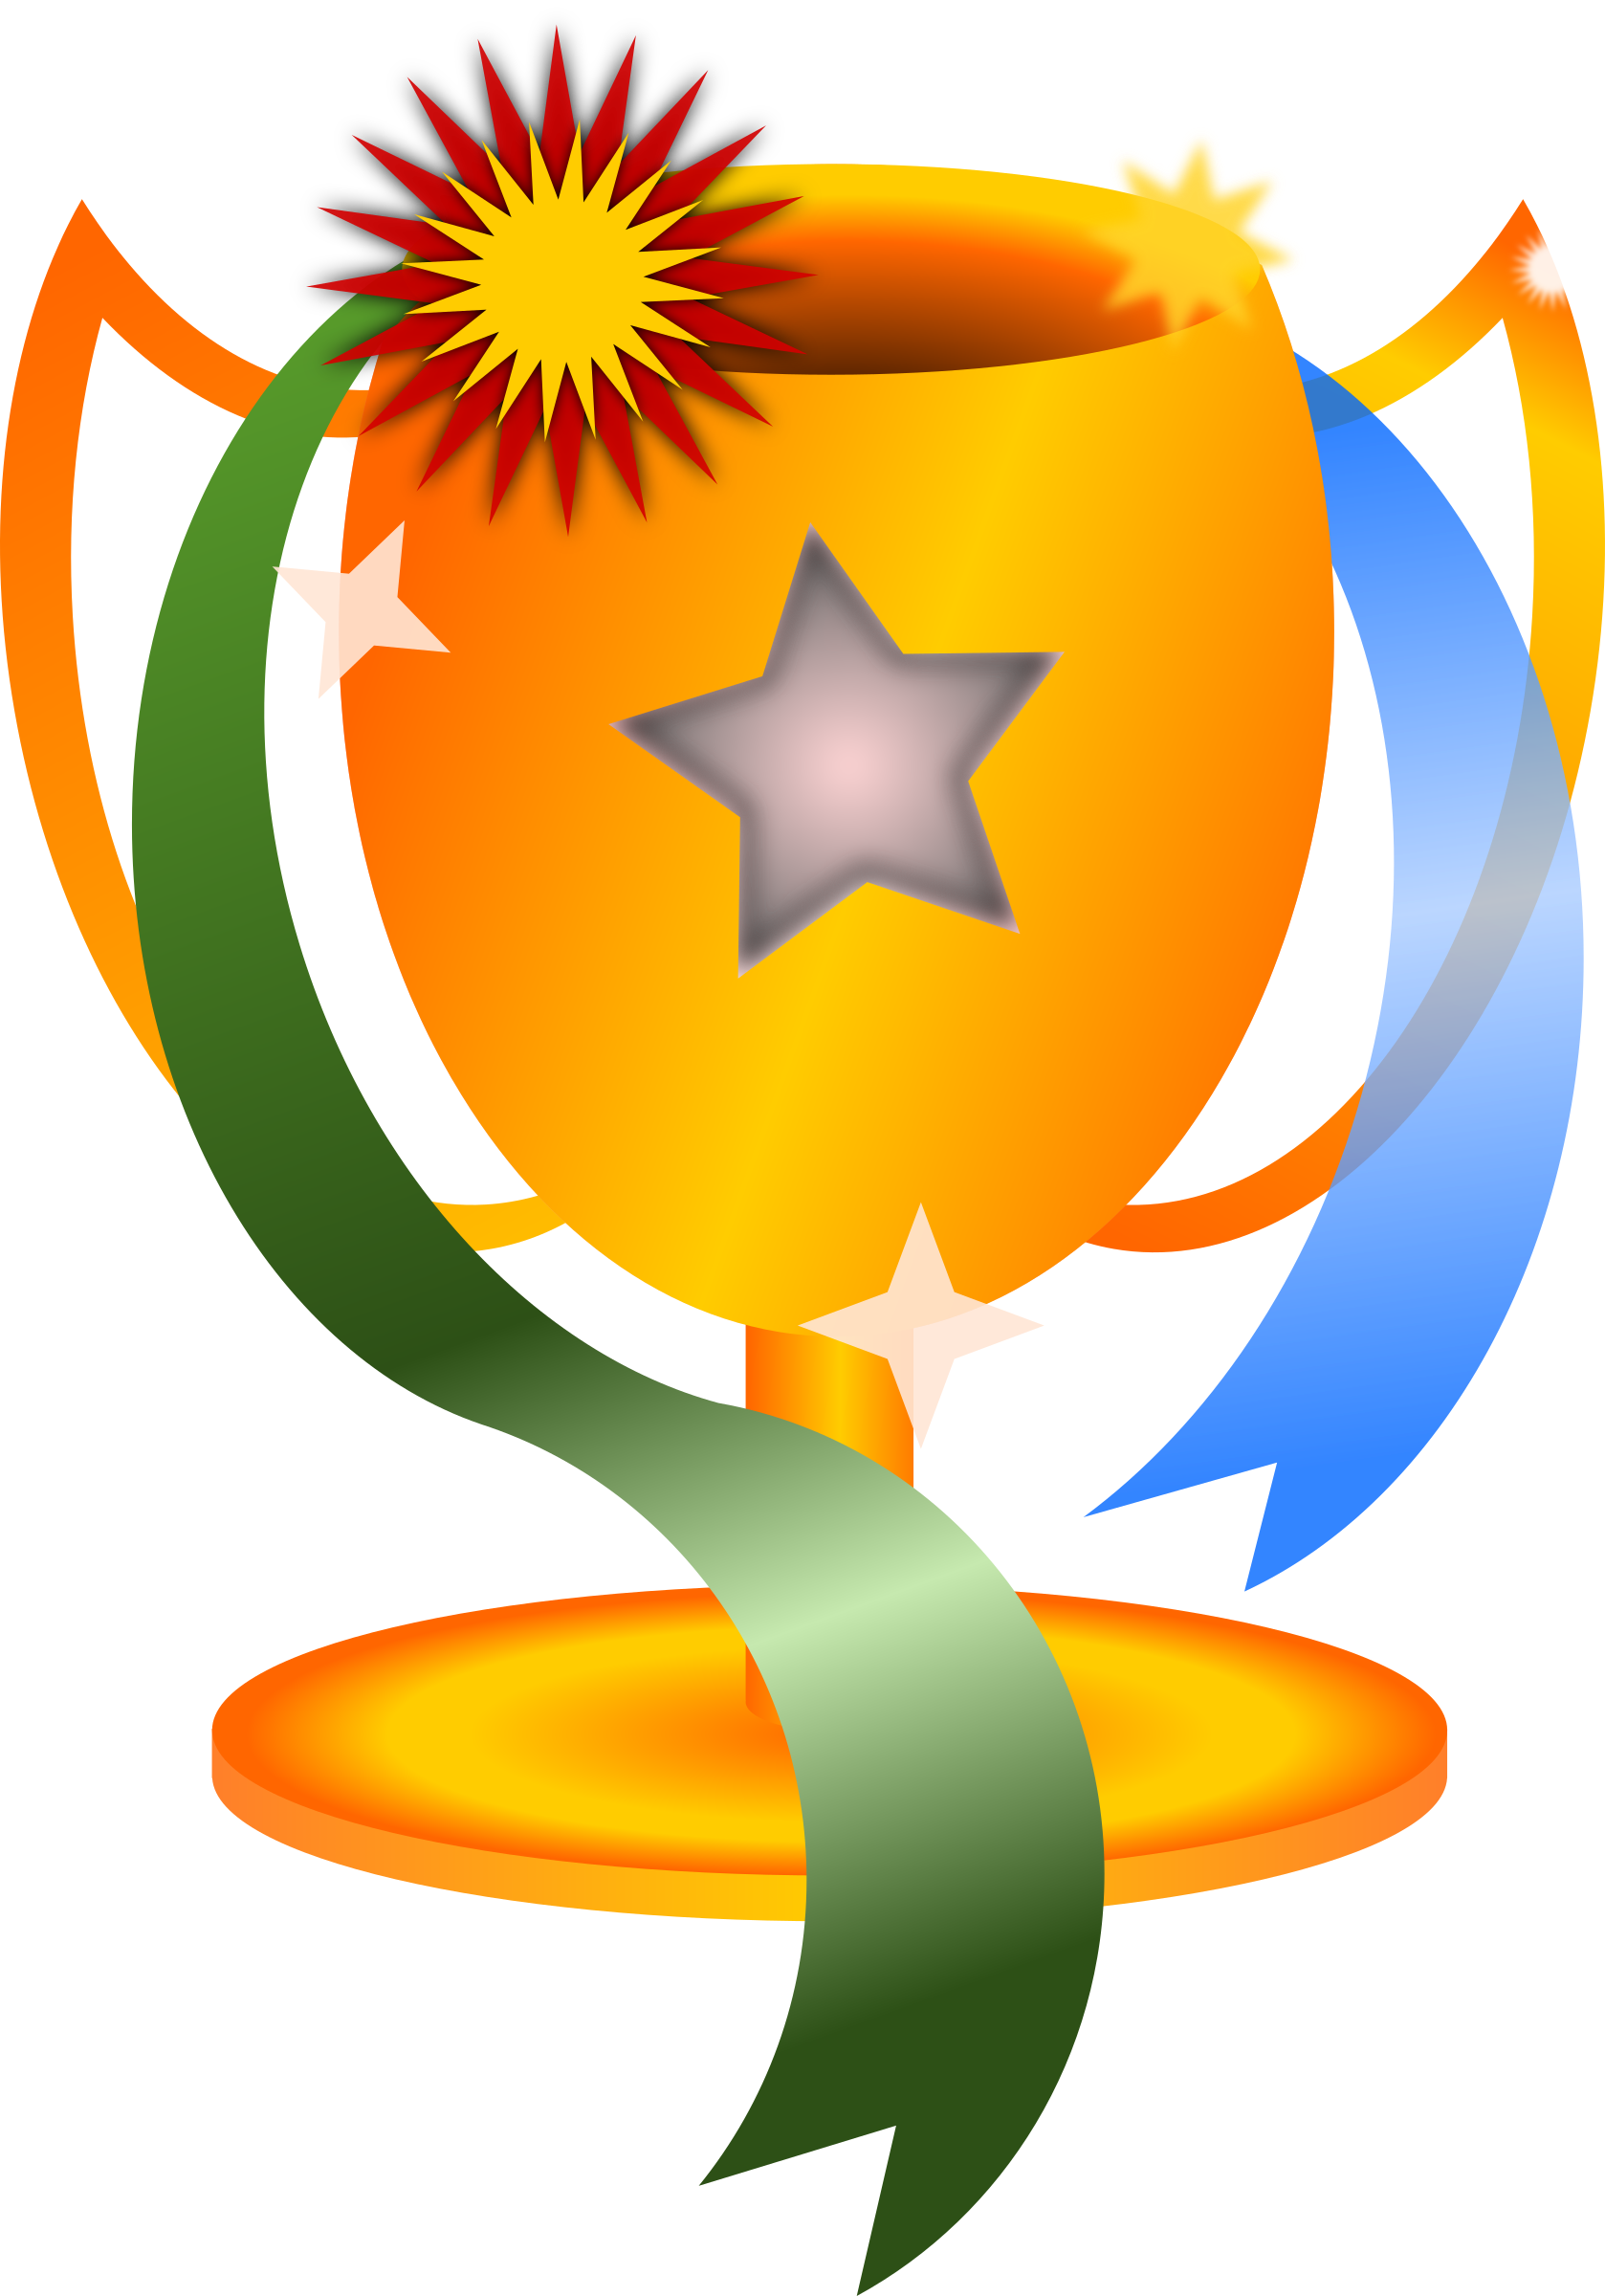 Winning trophy clipart clear.